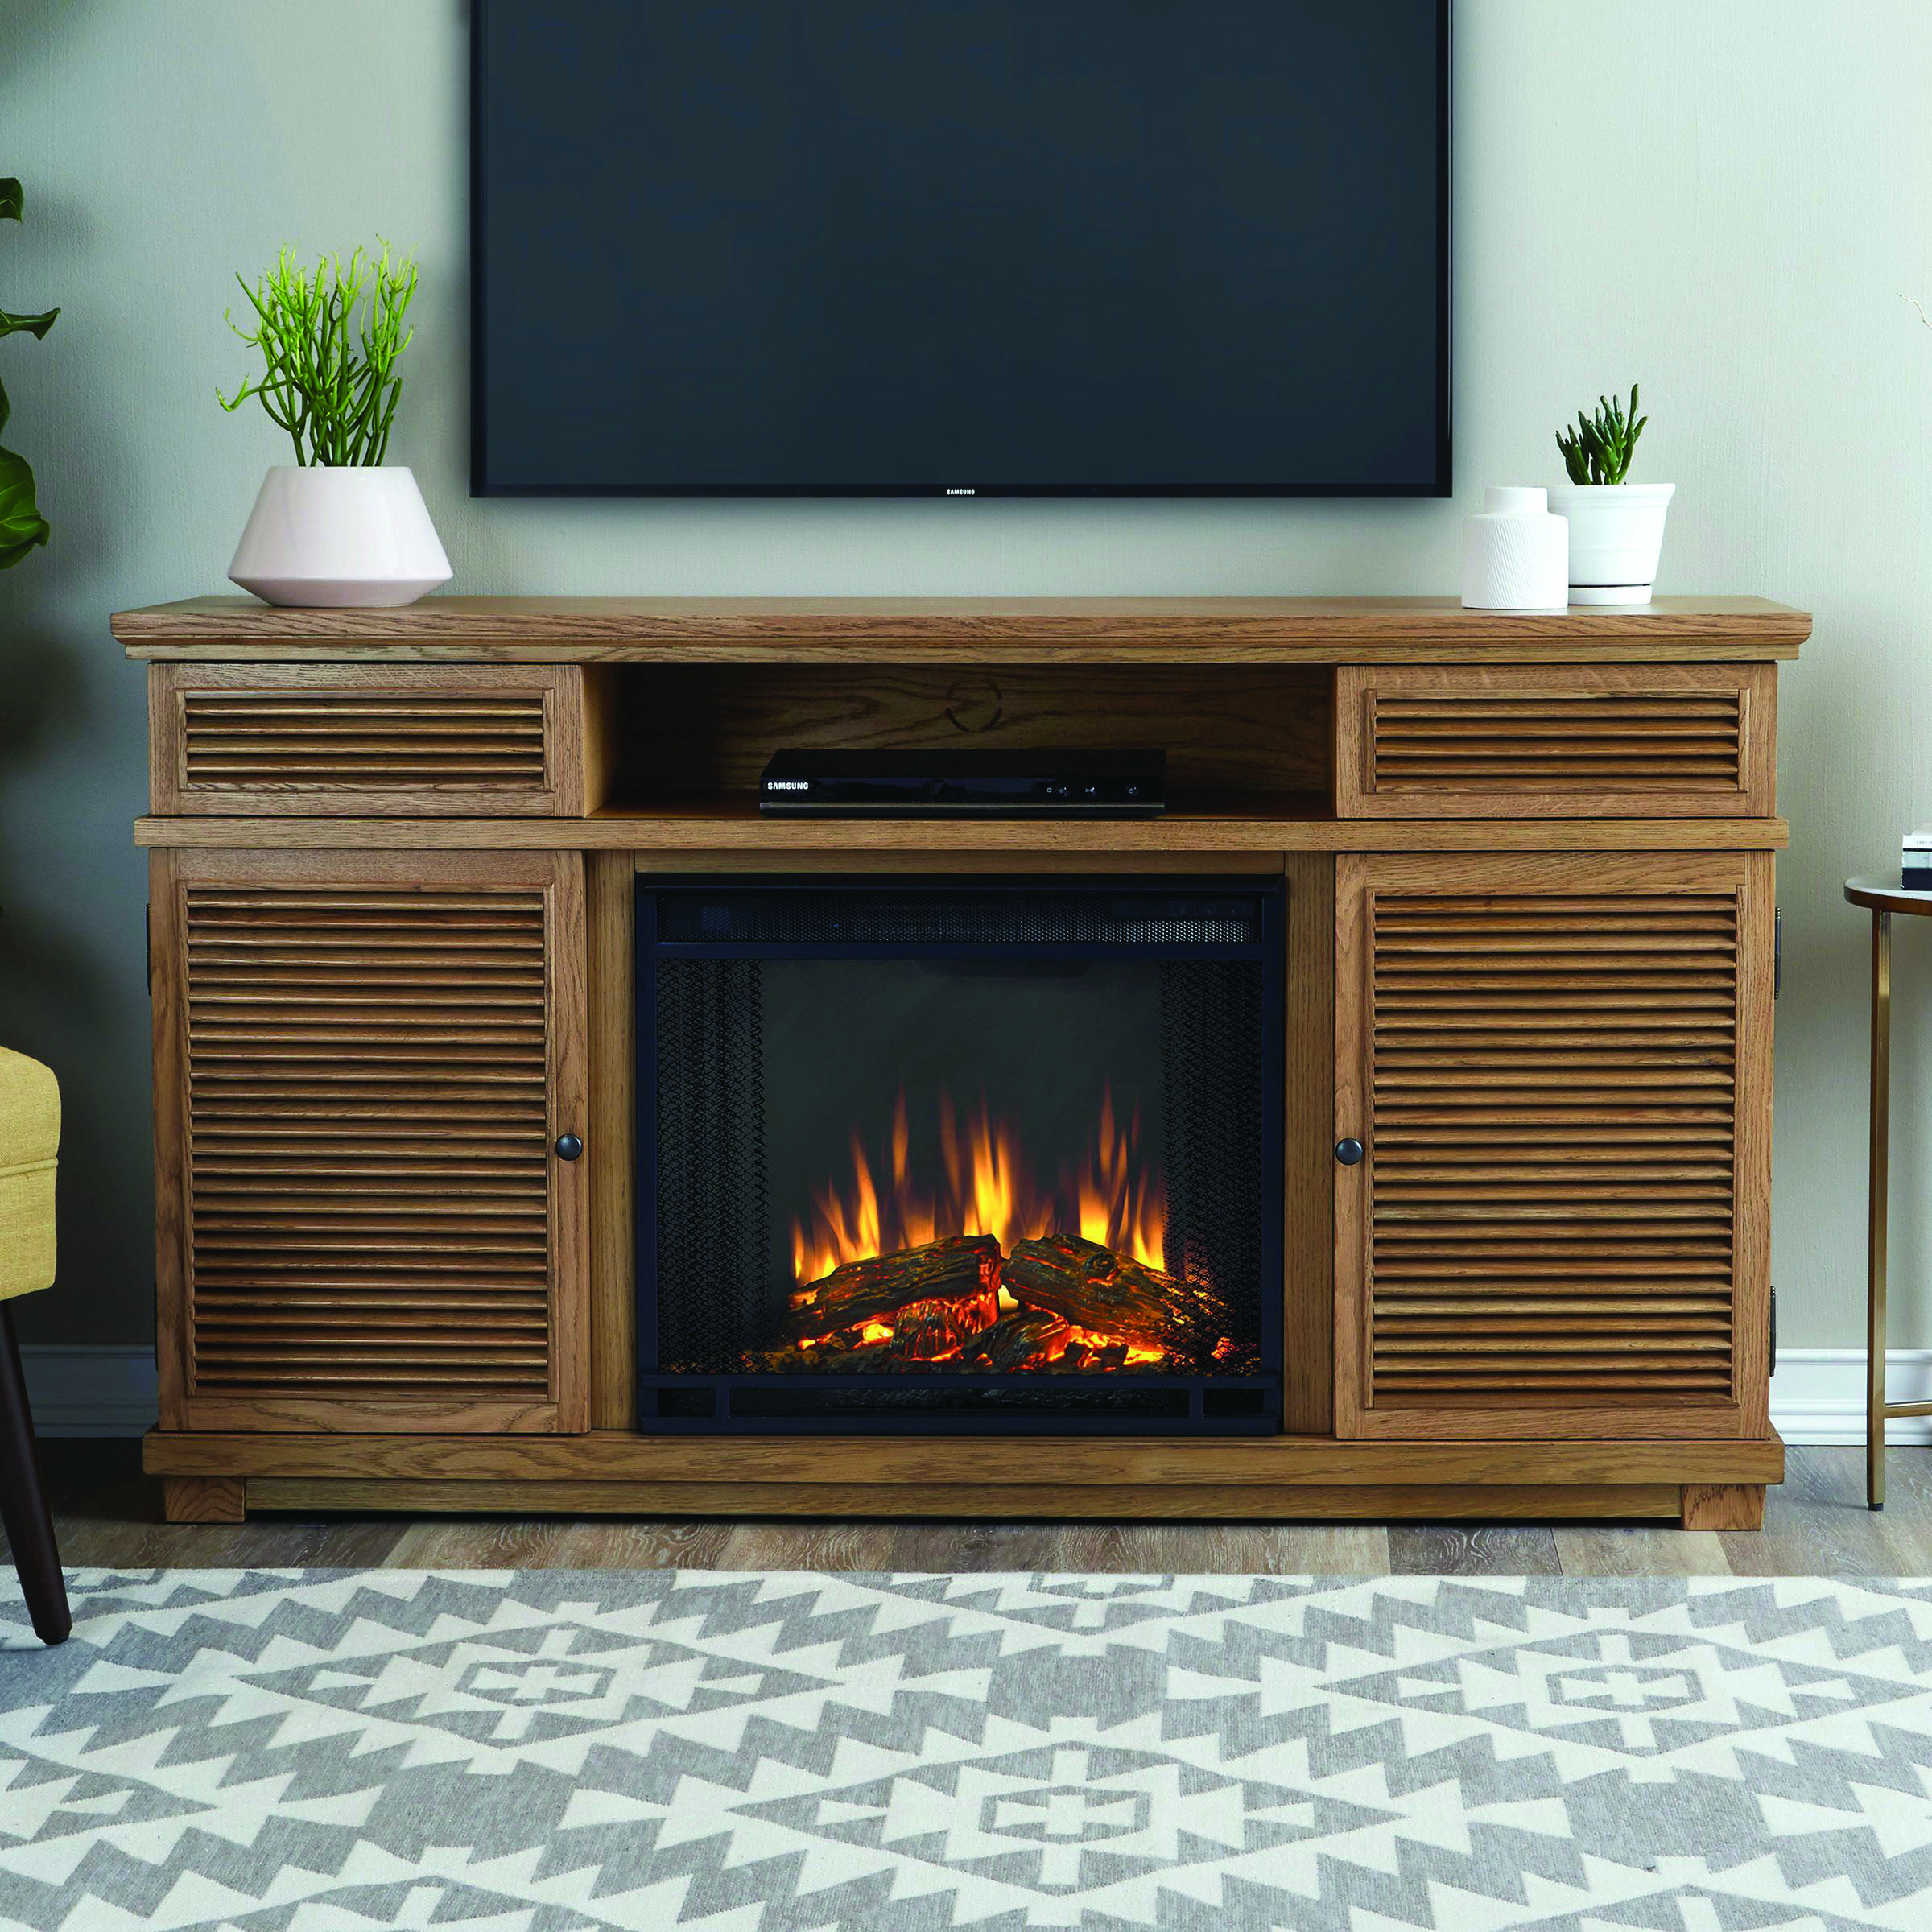 Remarkable Fireplace Tv Stand Conns For Your Home Electric